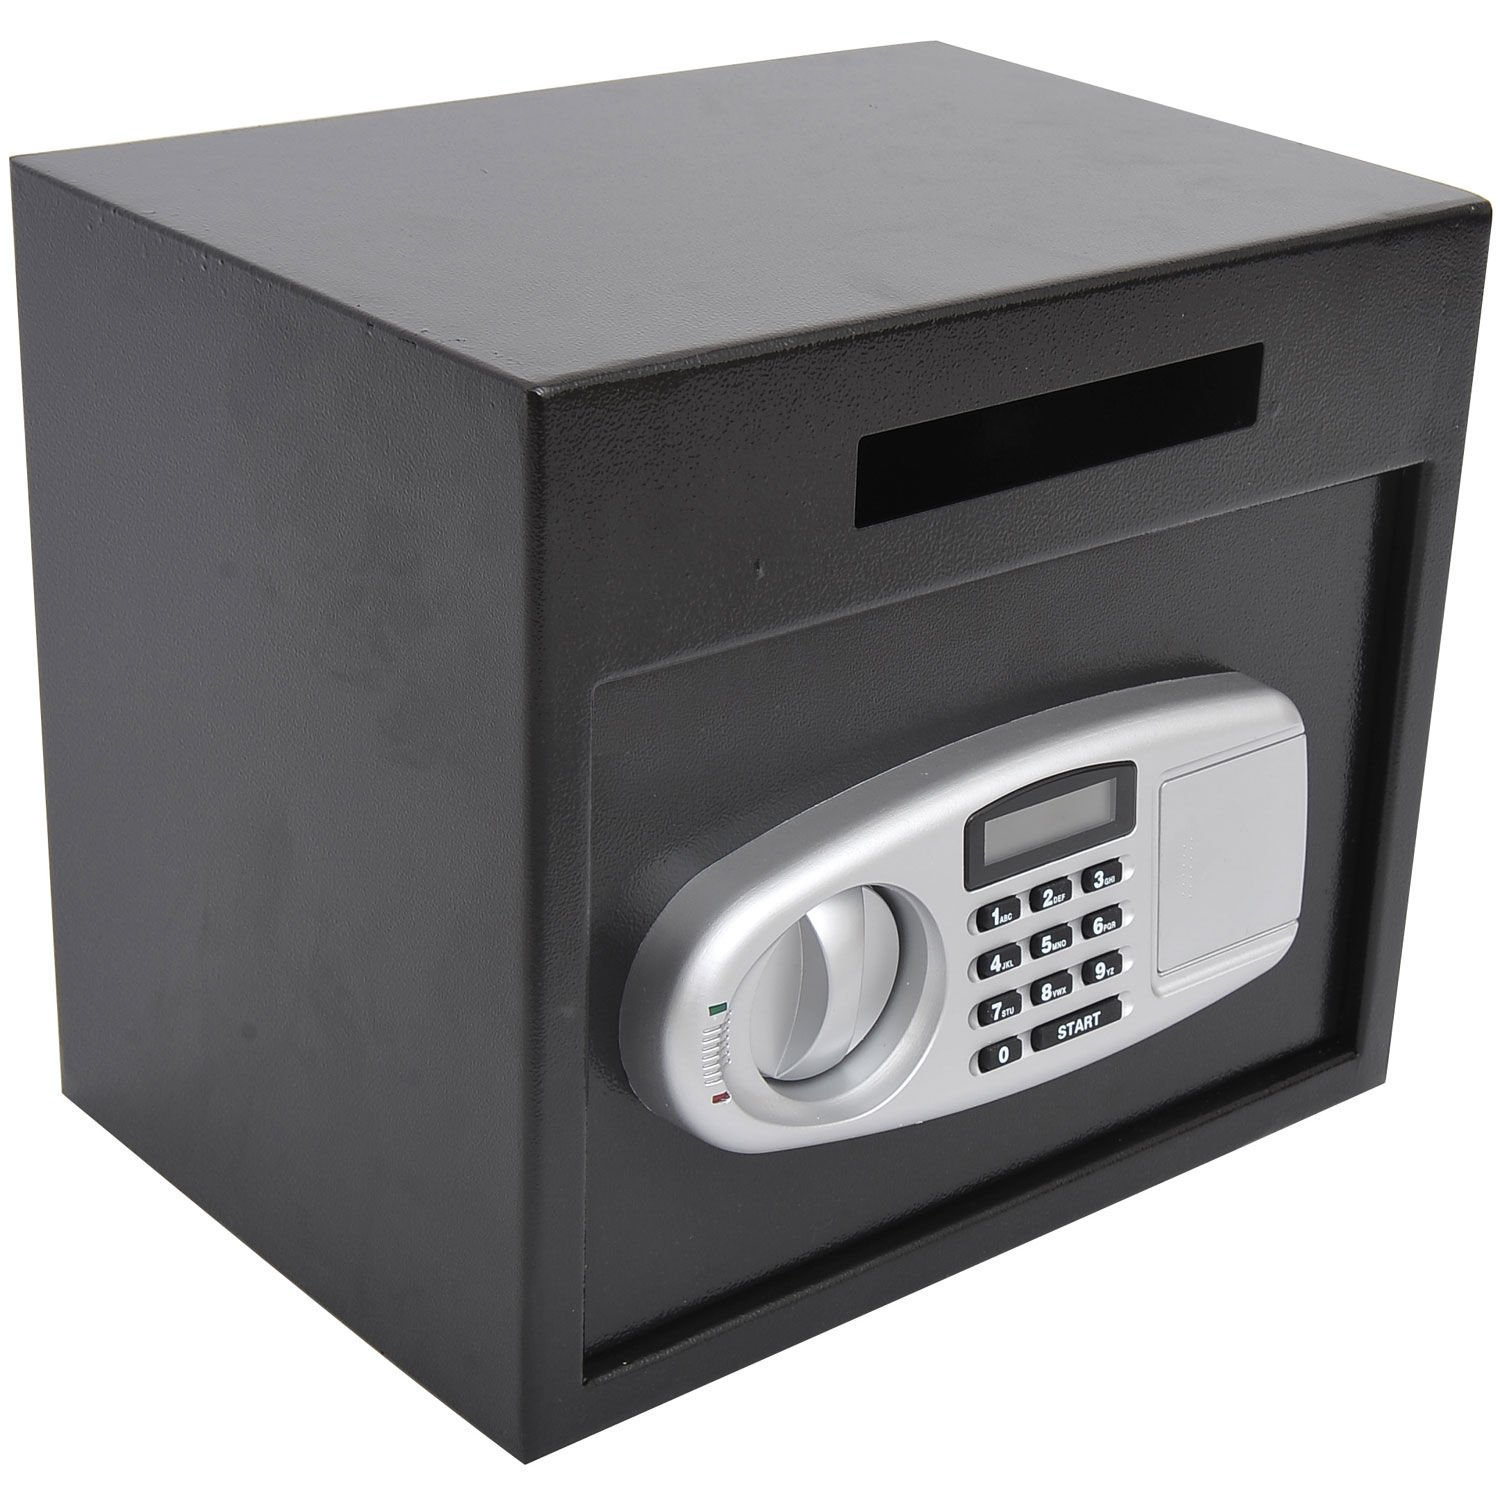 HOMCOM 12'' x 14'' x 10'' Digital Home Security Safe w/Deposit Slot - Black